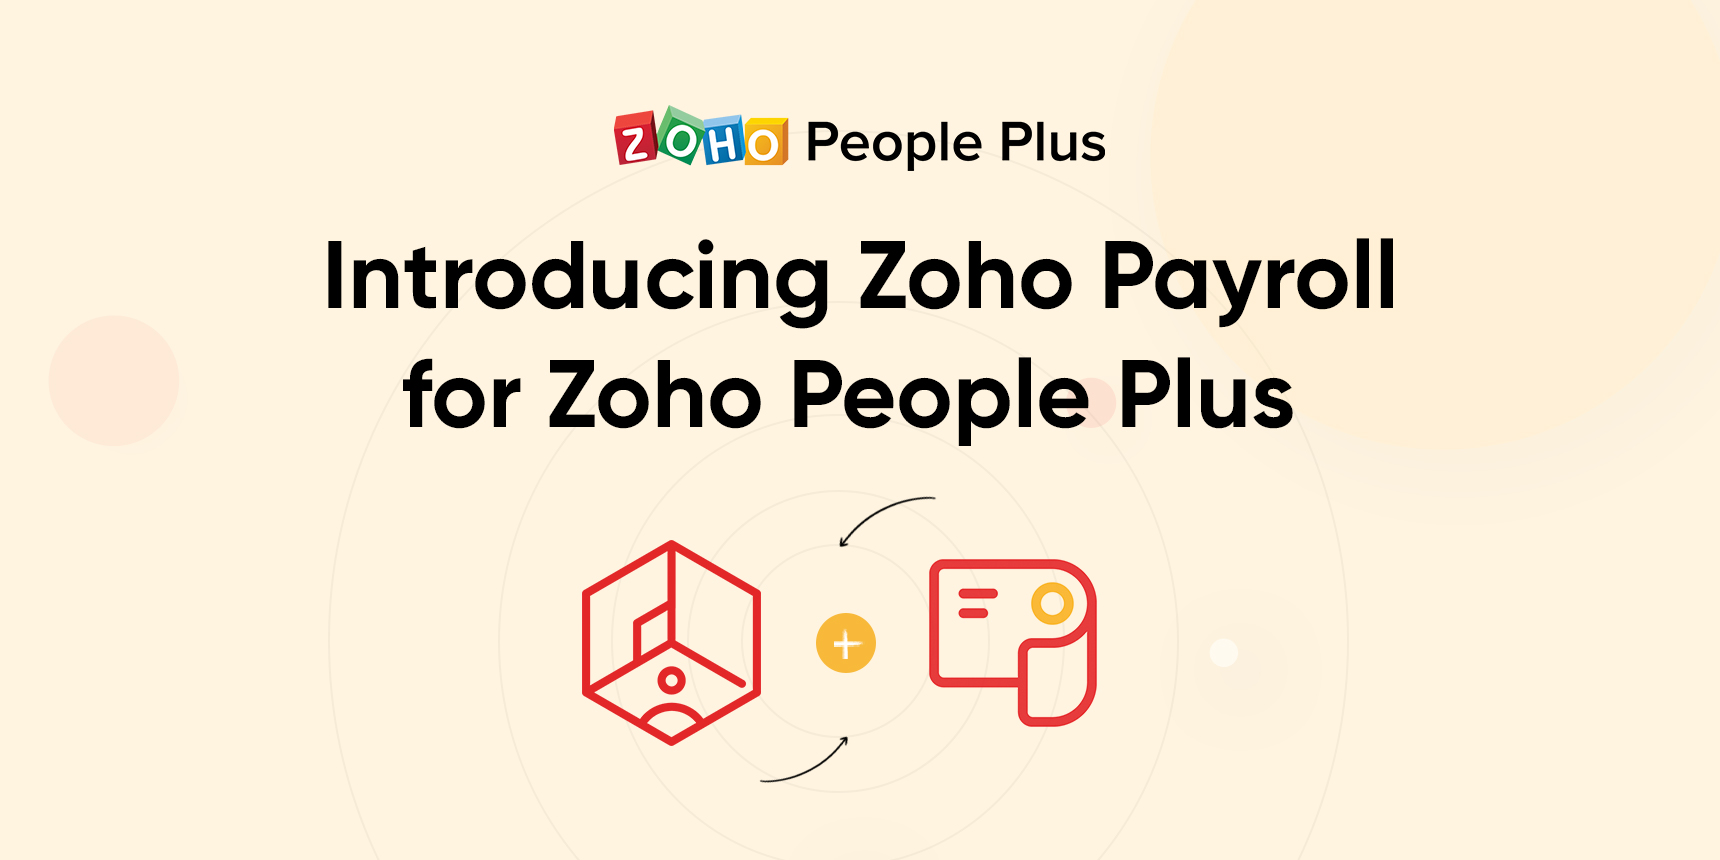 Introducing Zoho Payroll for Zoho People Plus: Put an end to payroll errors